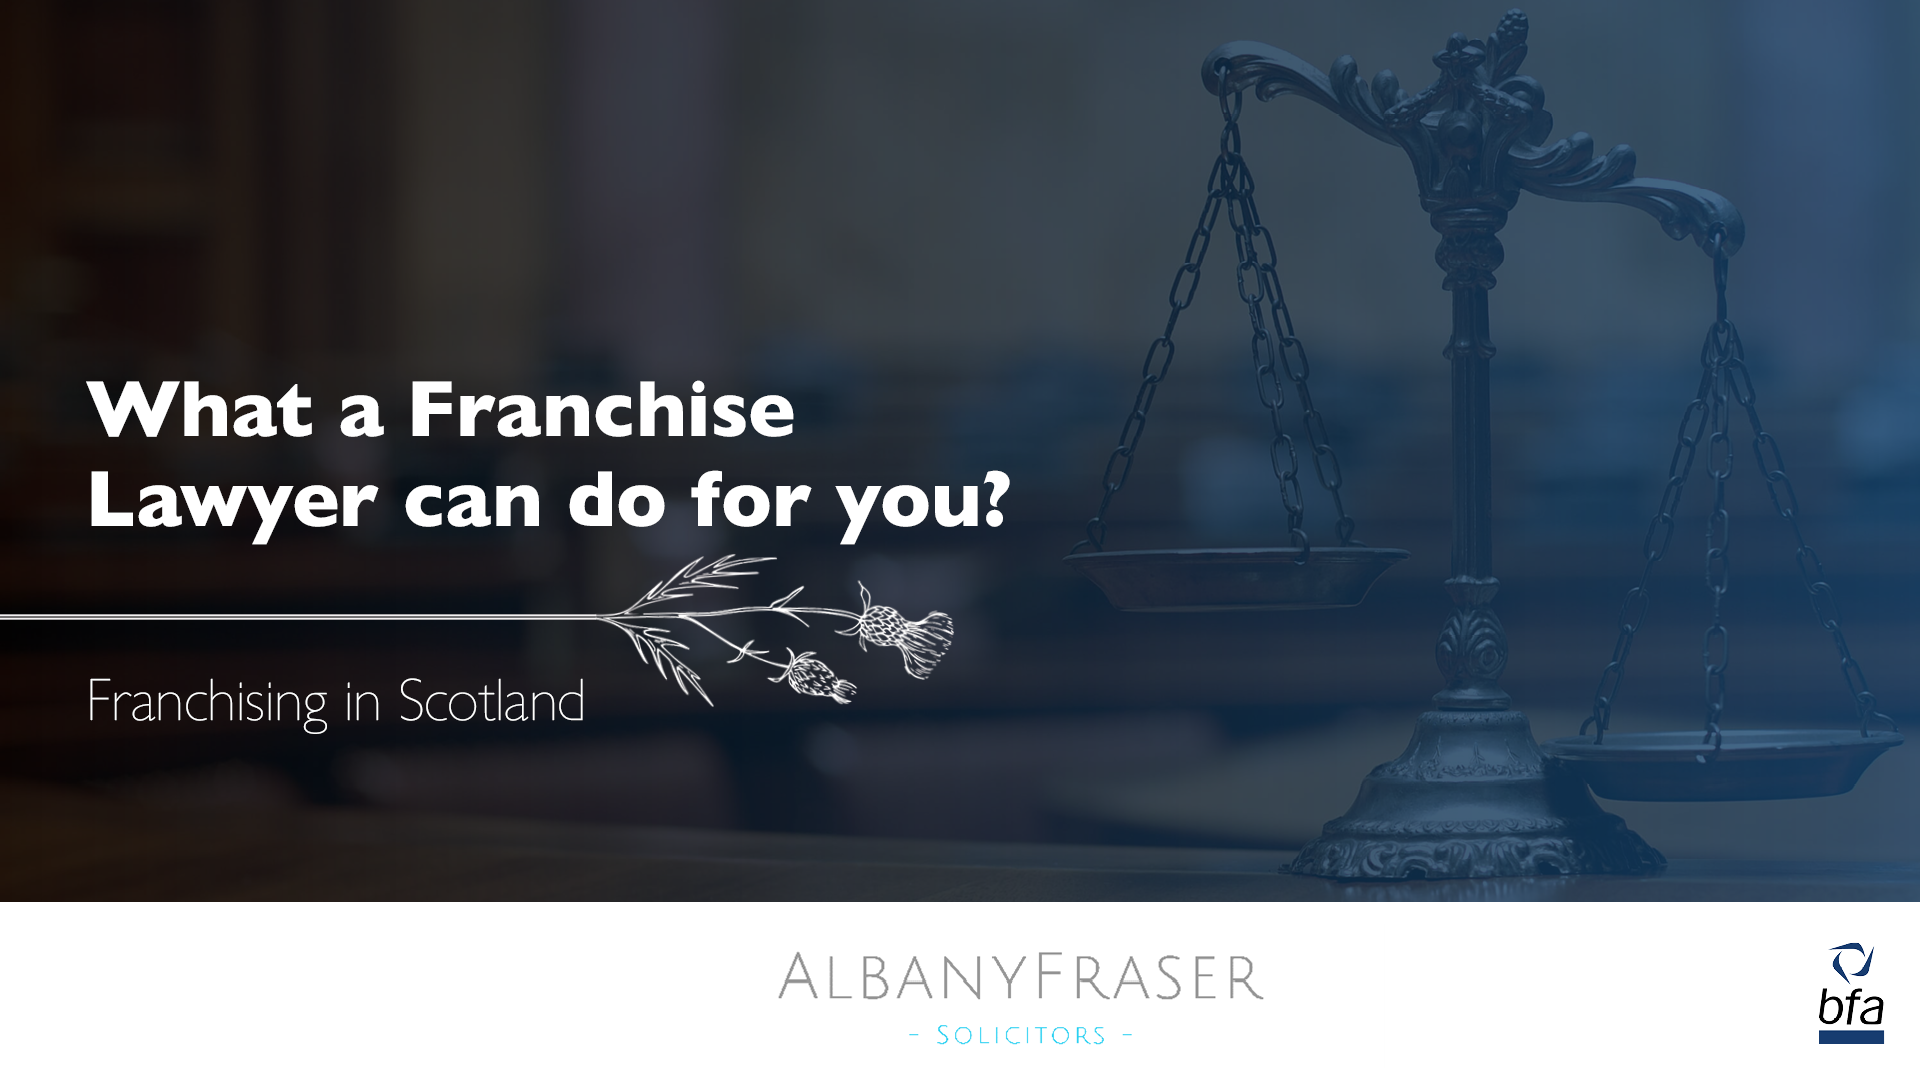 What a Franchise Lawyer can do for you?